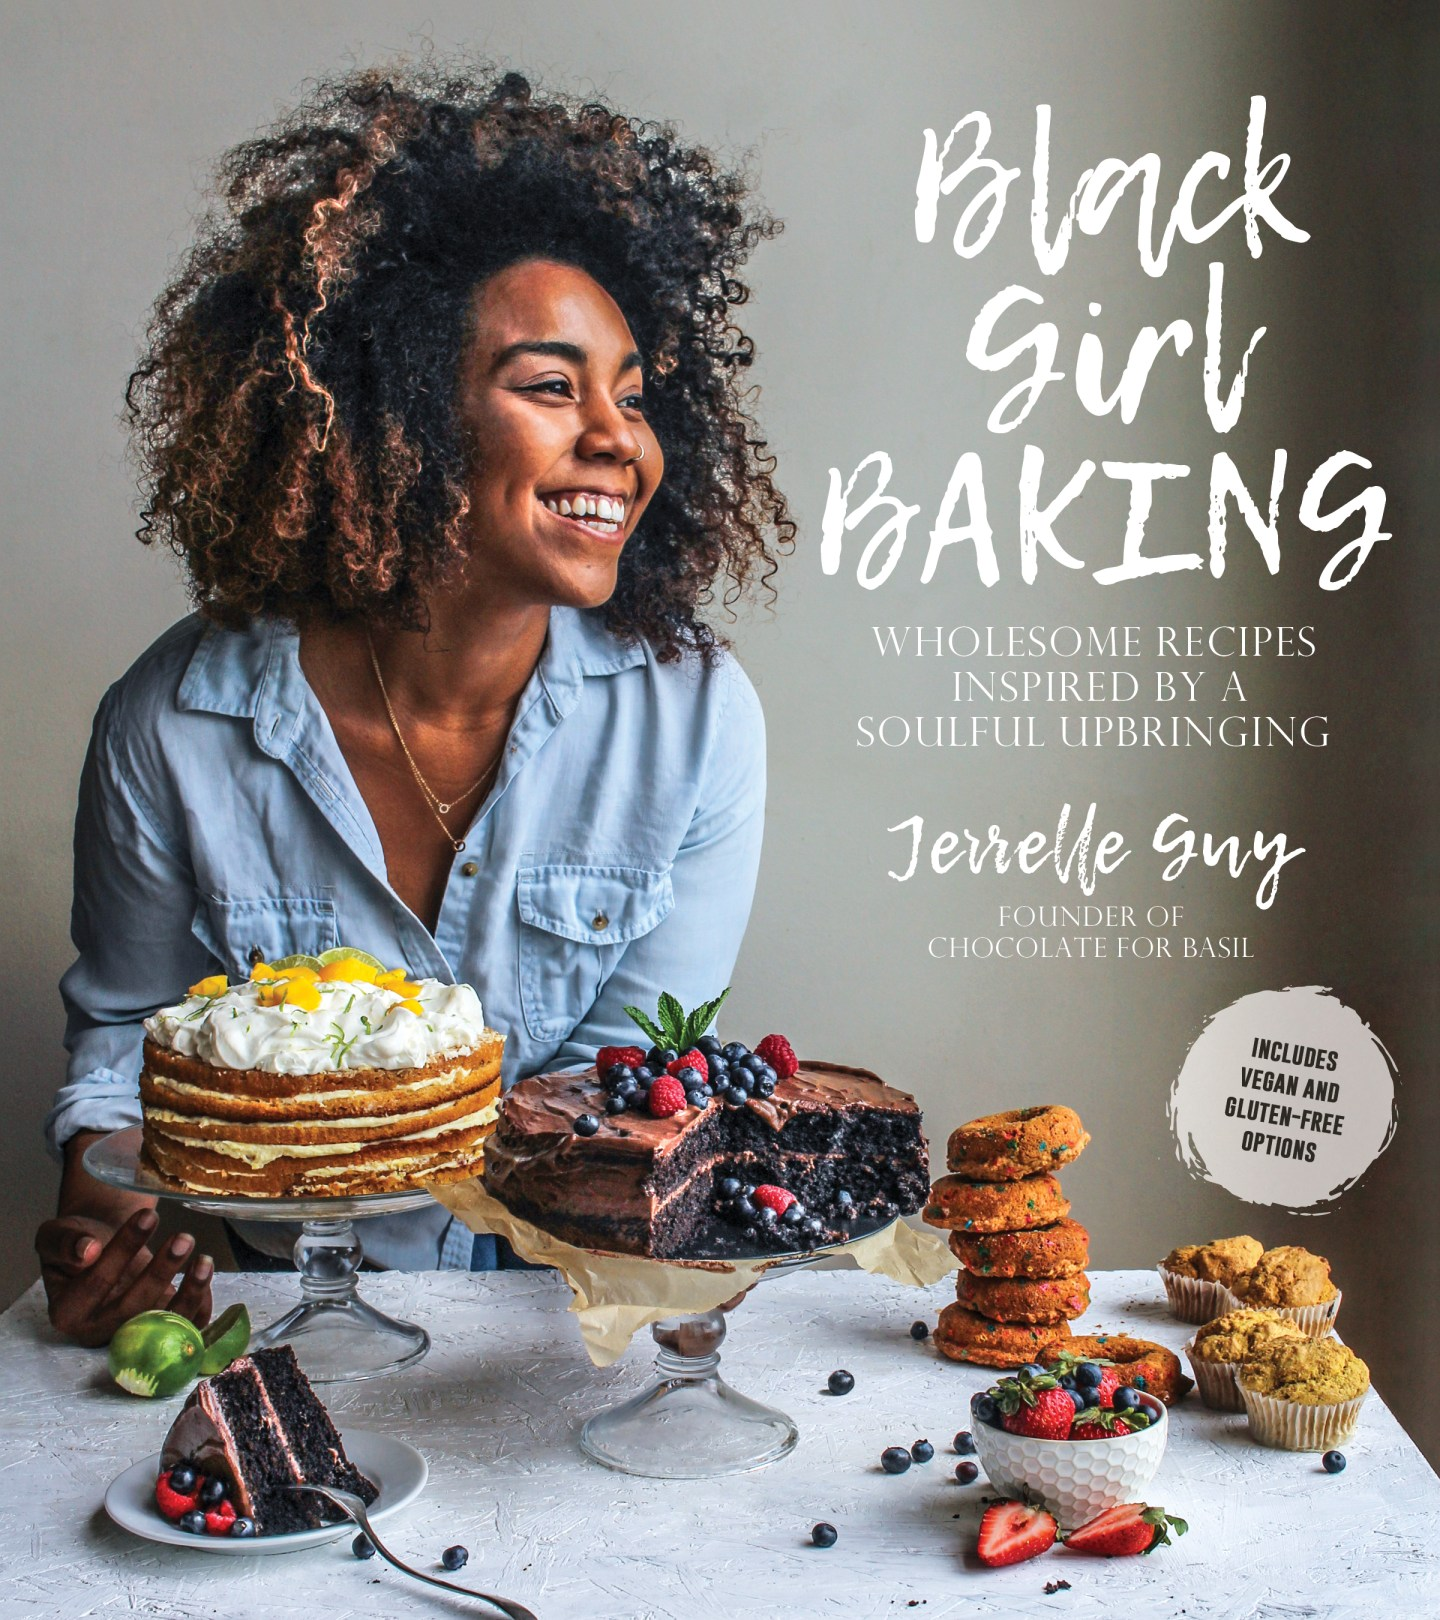 Black Girl Baking by Jerrelle Guy and the Essentials for Southern Baking